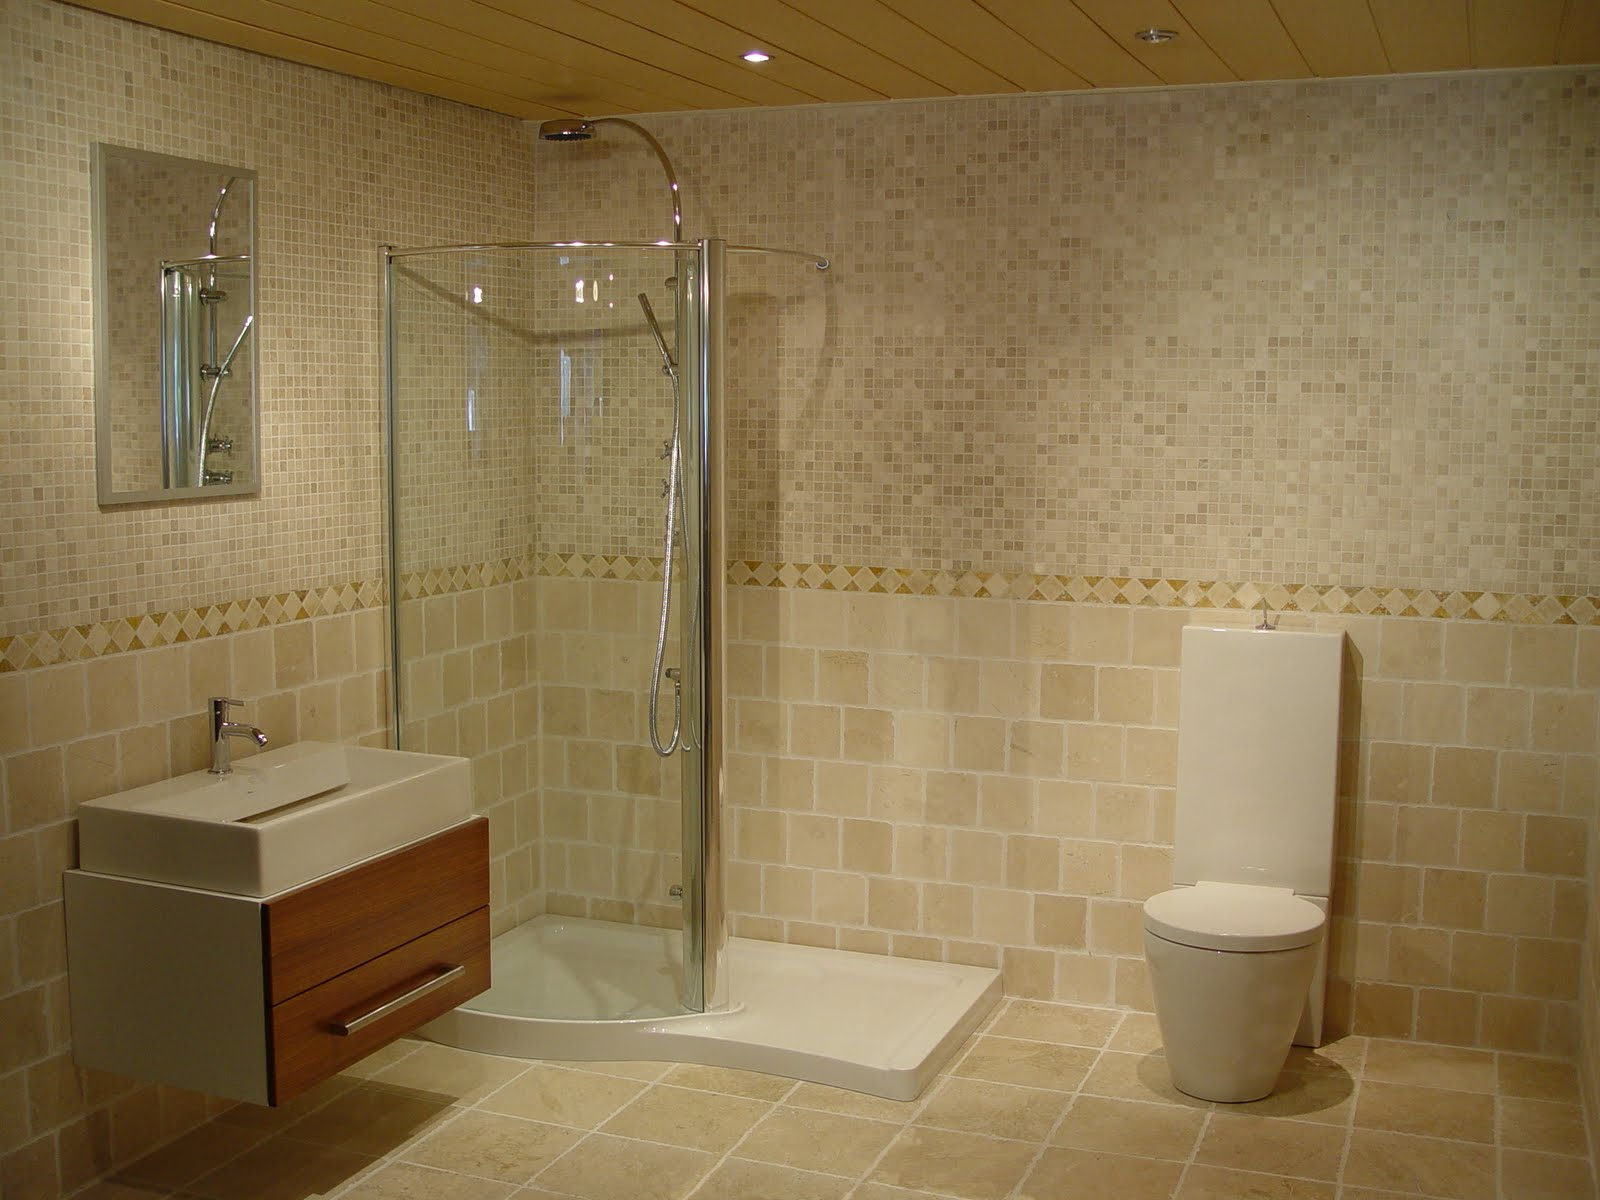 Magnificent Bathroom Design Tile Showers Ideas 1600 x 1200 · 174 kB · jpeg